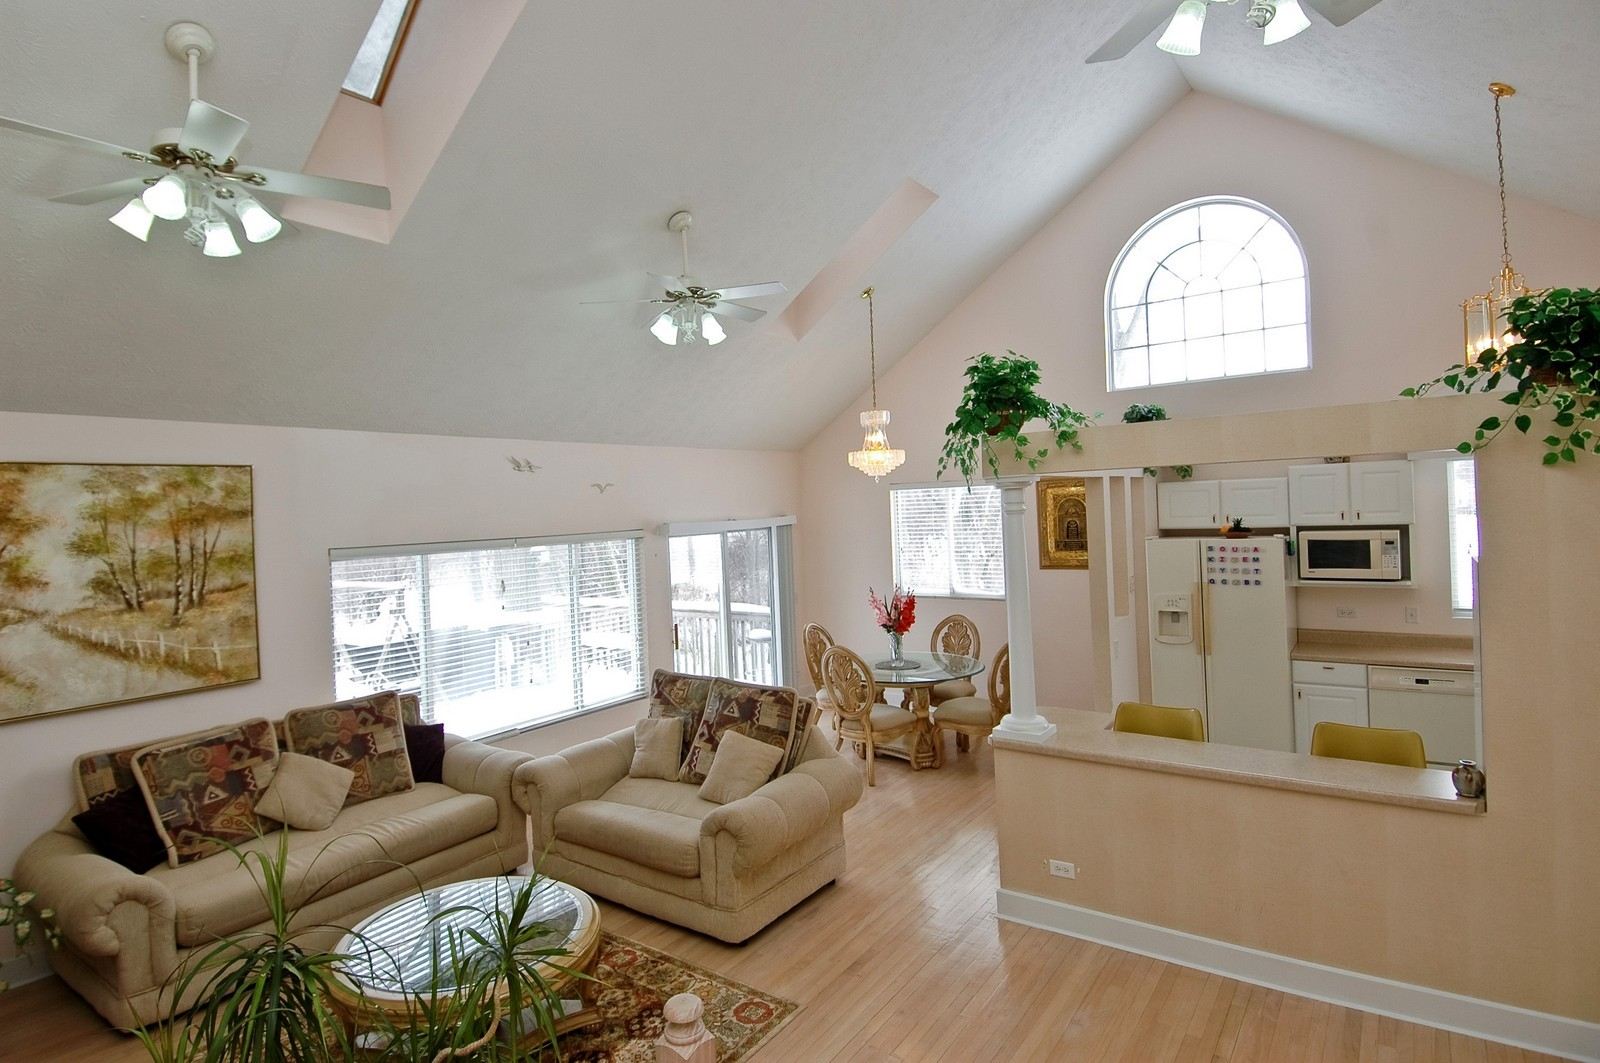 Real Estate Photography - 11811 Halma, Woodstock, IL, 60098 - Living Room